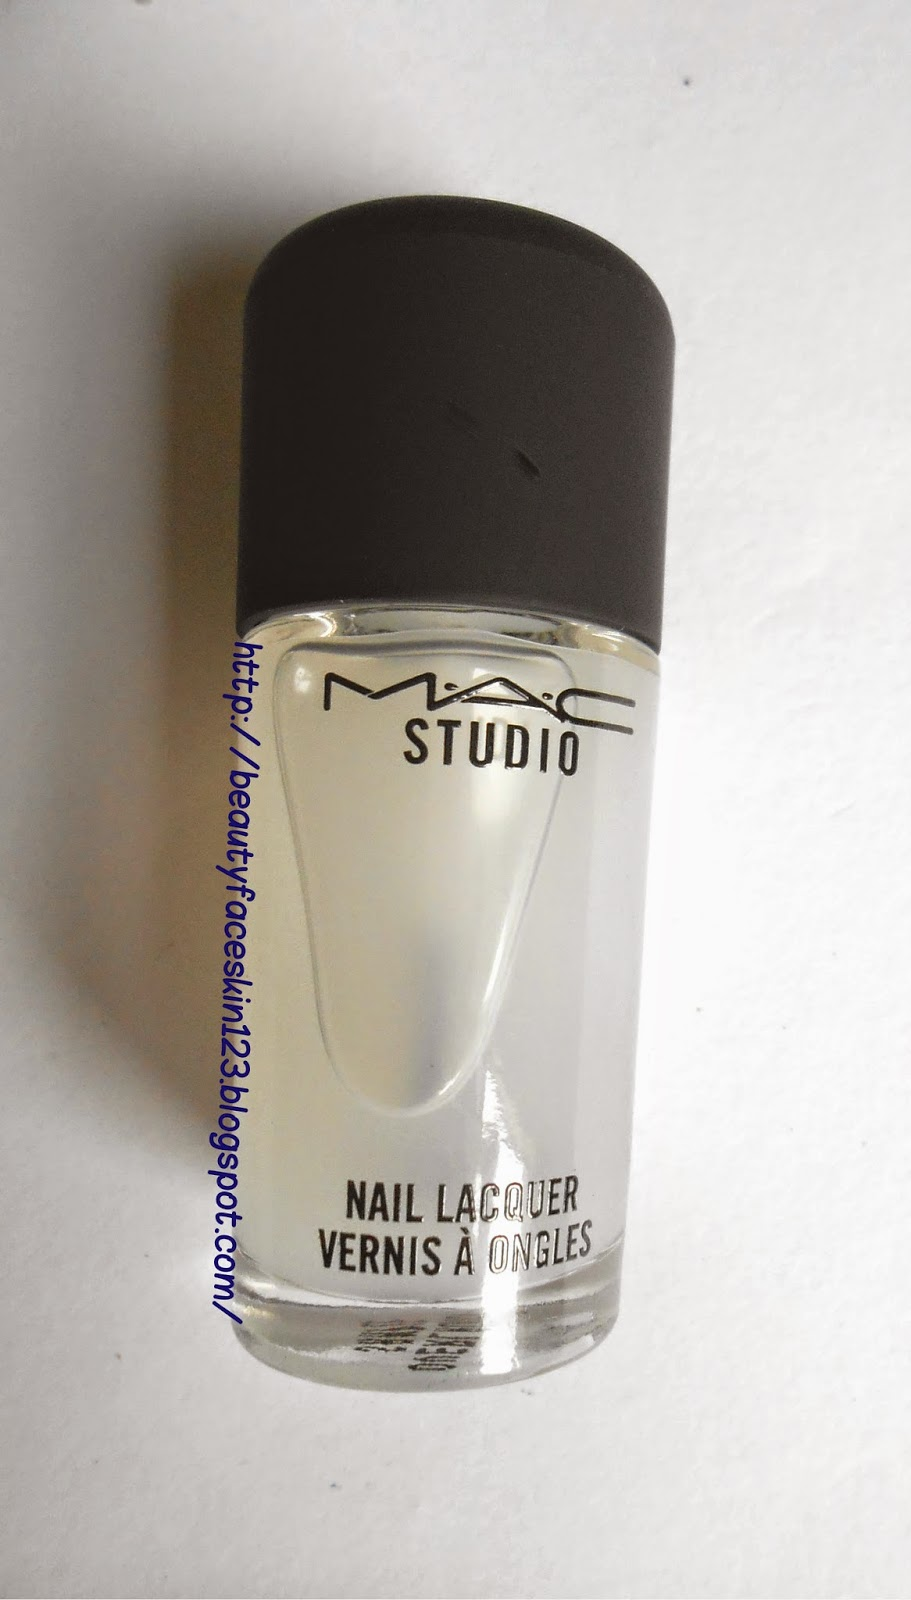 GREAT SKIN&LIFE: REVIEW ON MAC STUDIO MATTE OVERLACQUER